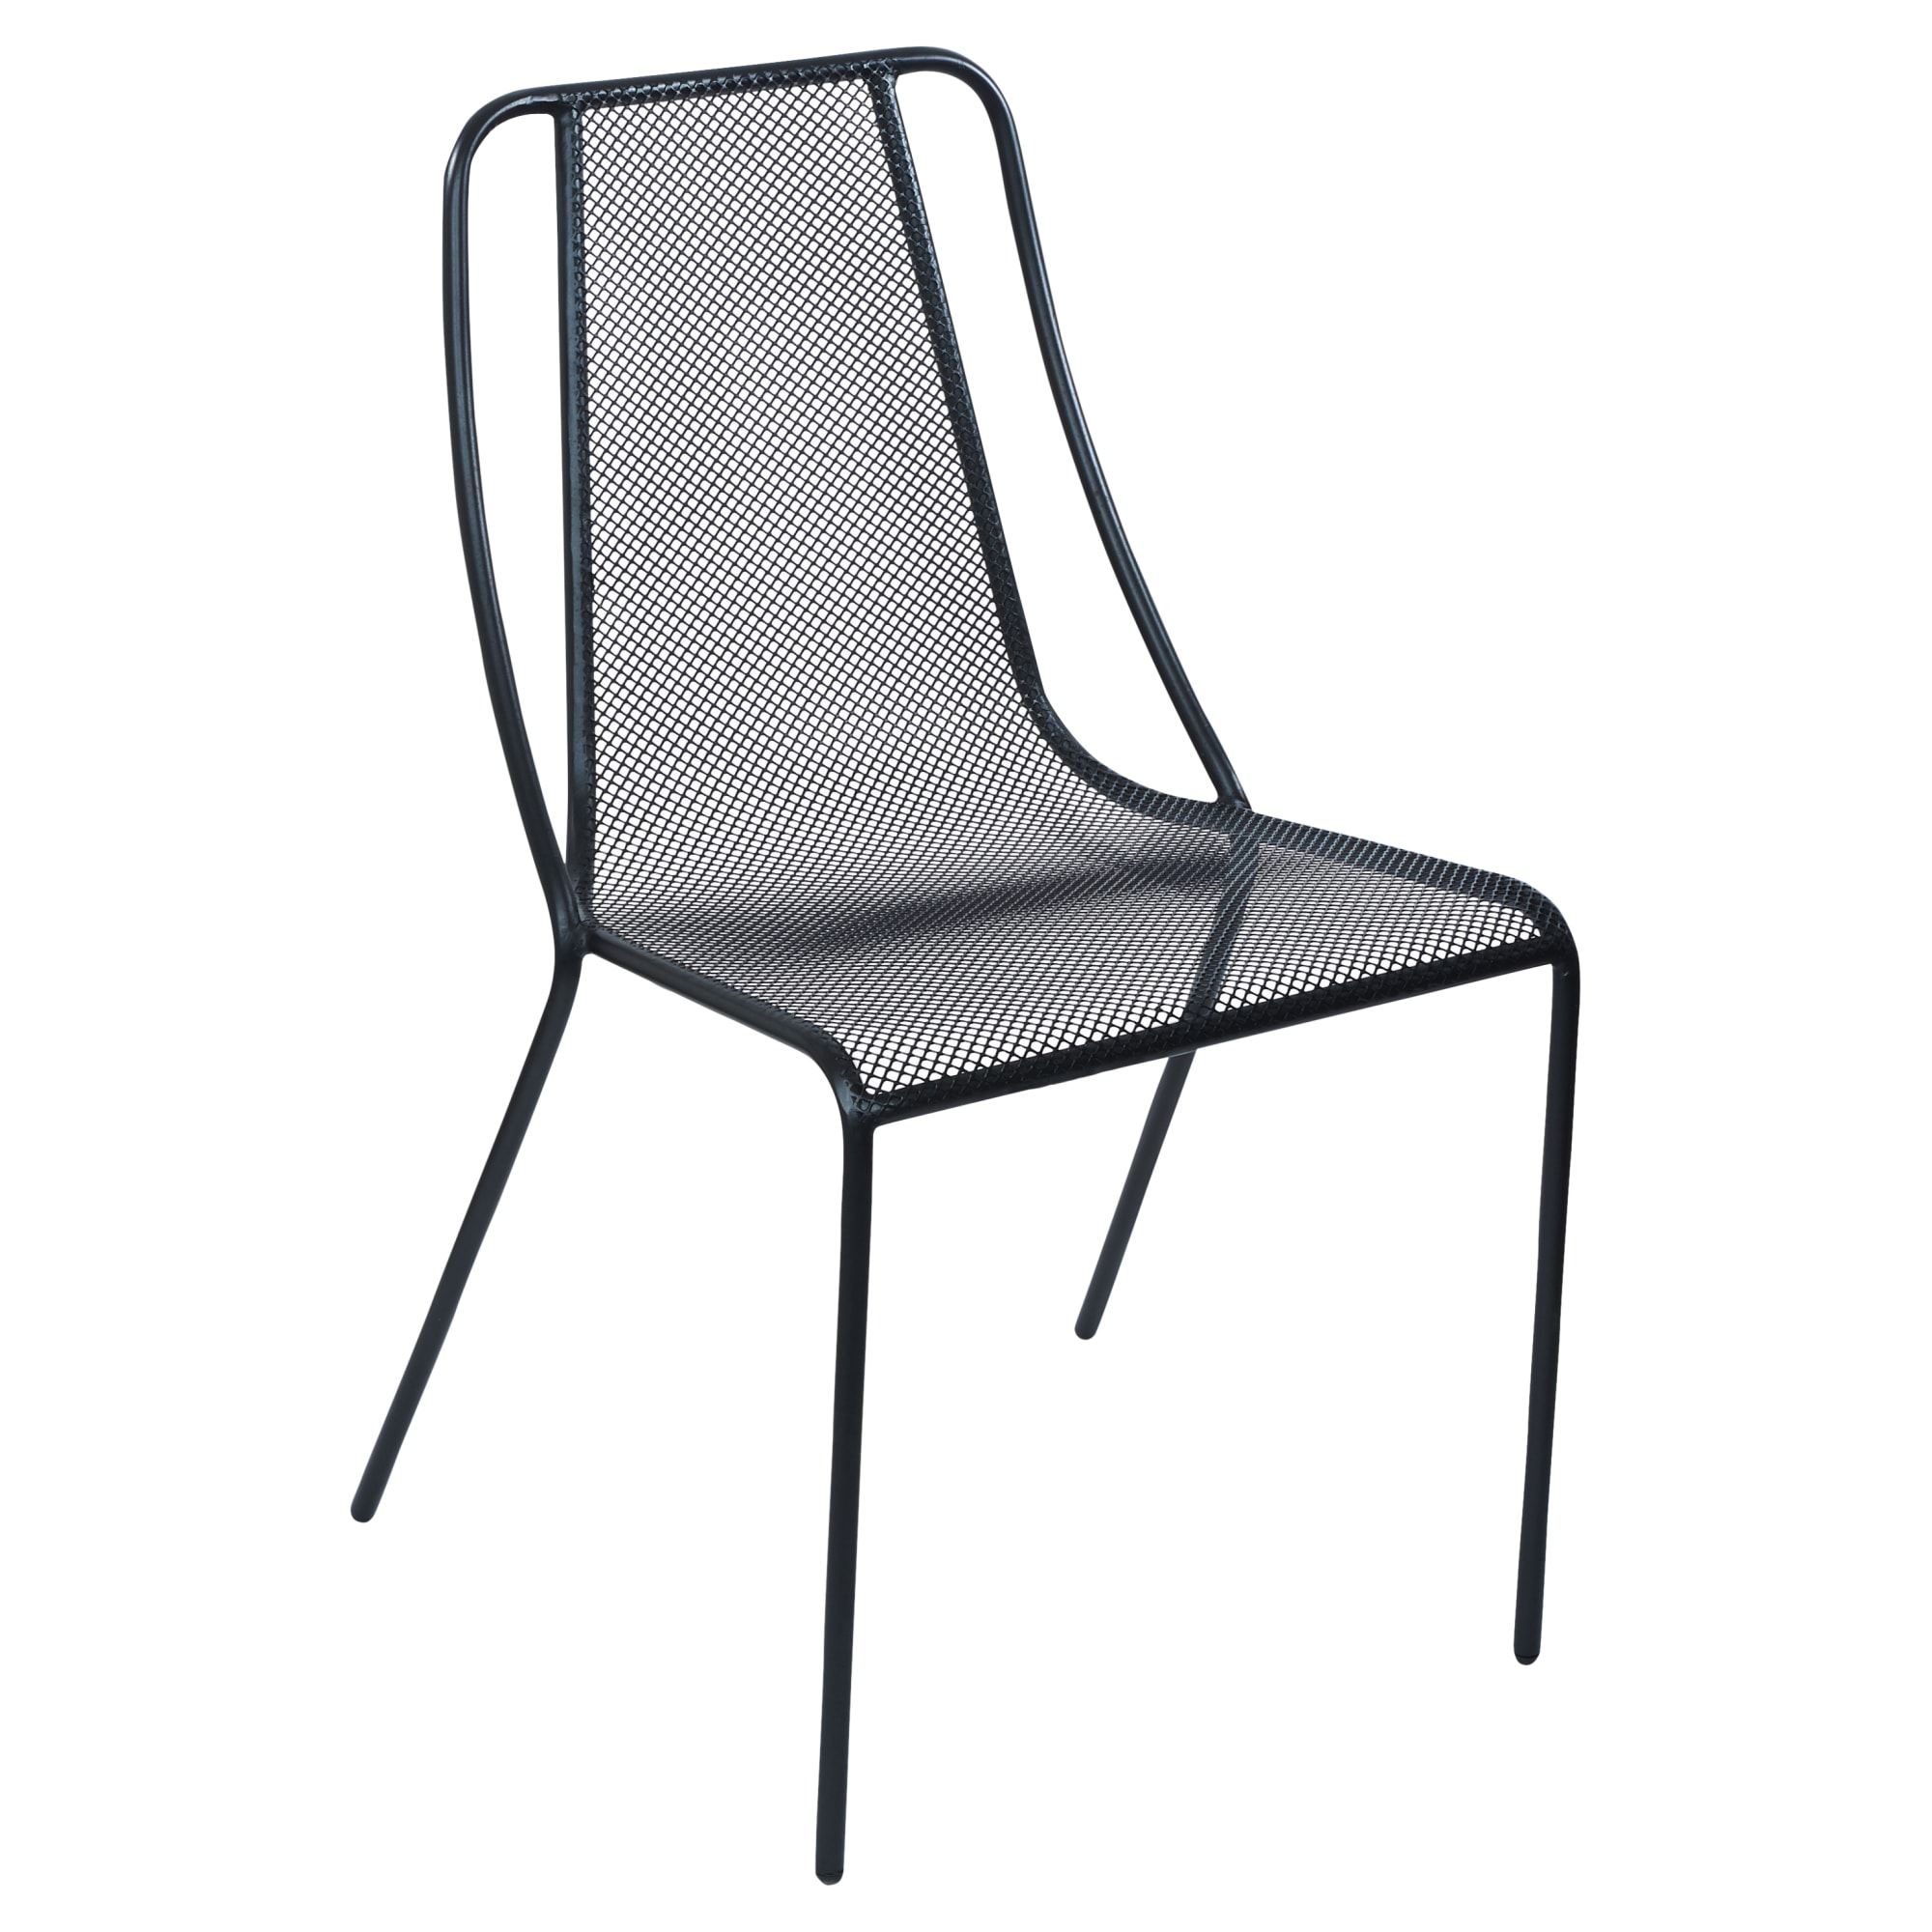 Modern Metal Mesh Outdoor Chair